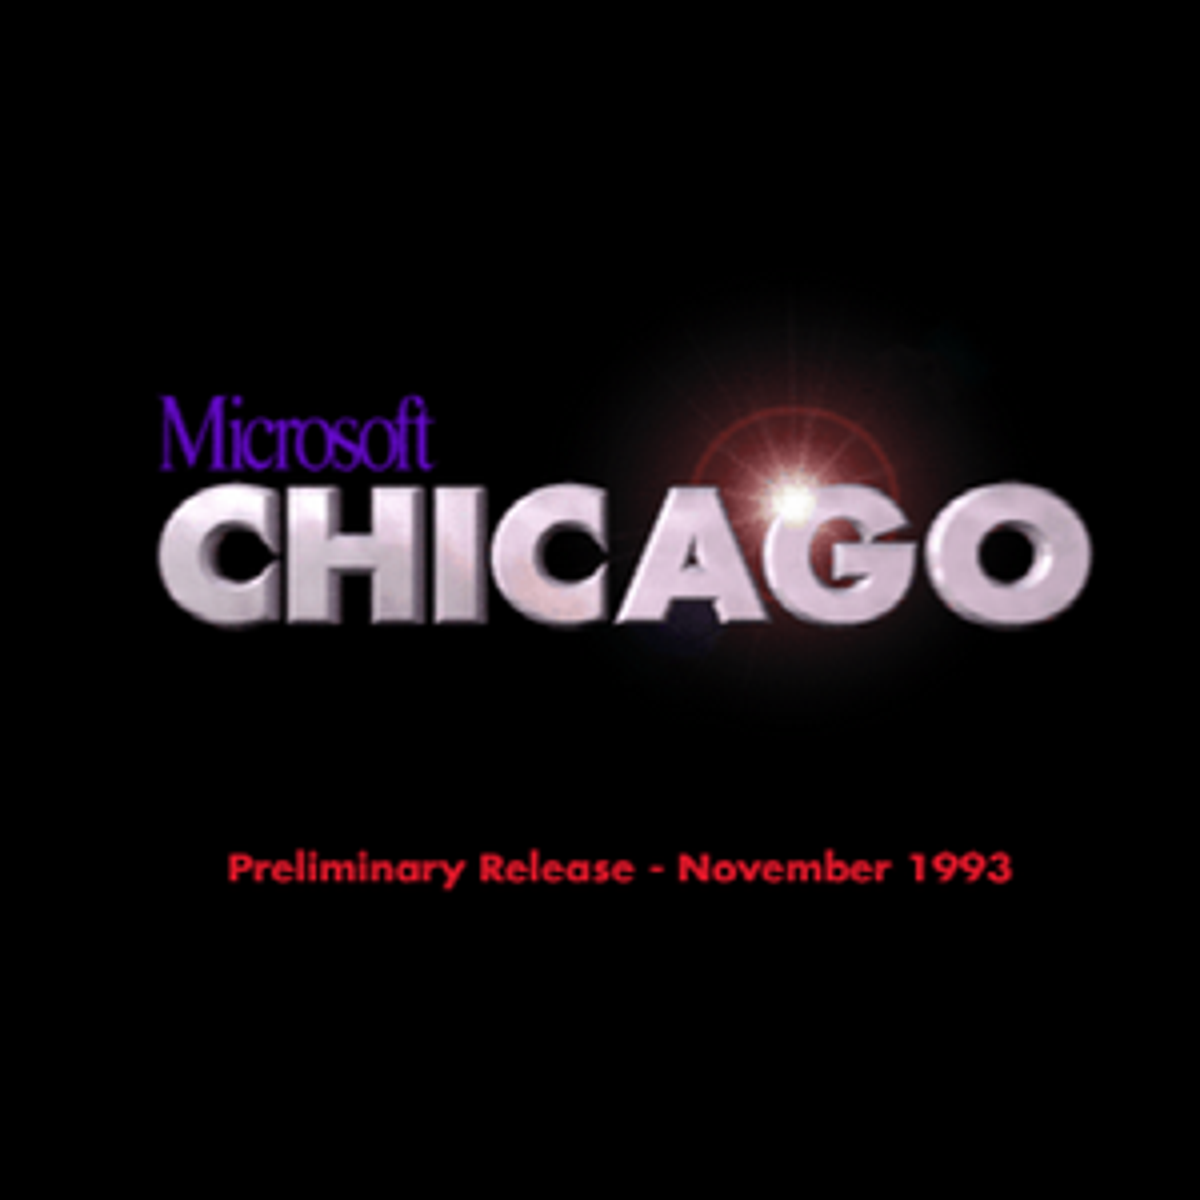 The boot splash screen of an early test copy of Windows 95 showing the code name Chicago.